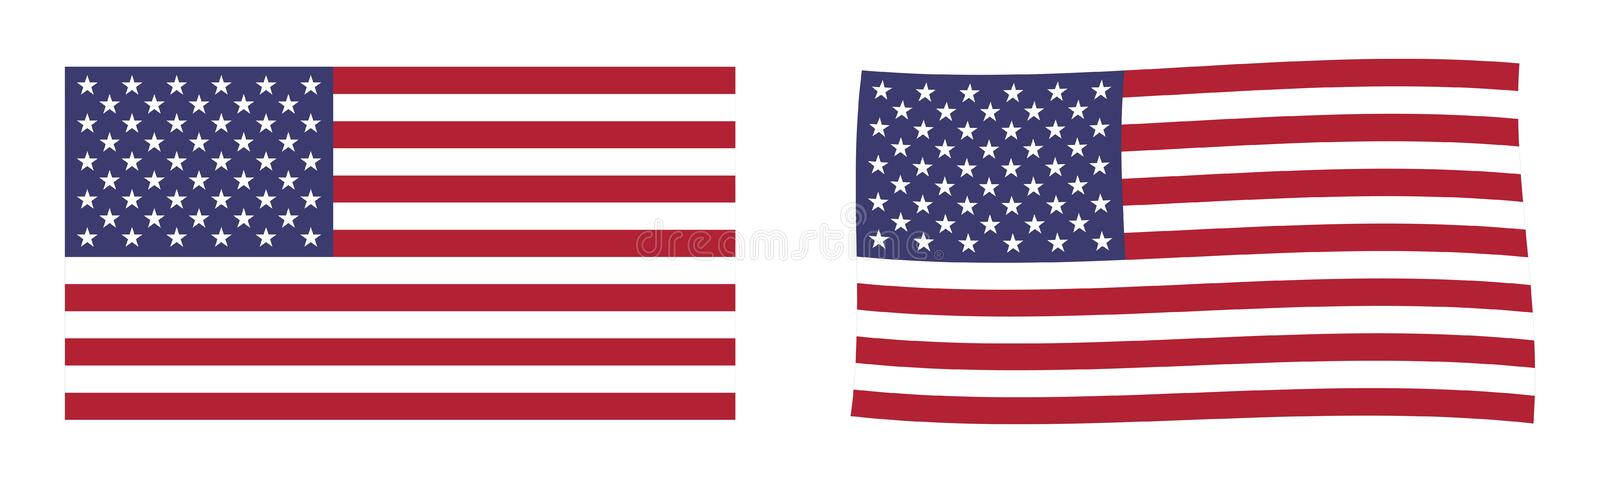 United States of America flag. Simple and slightly waving version. vector illustration